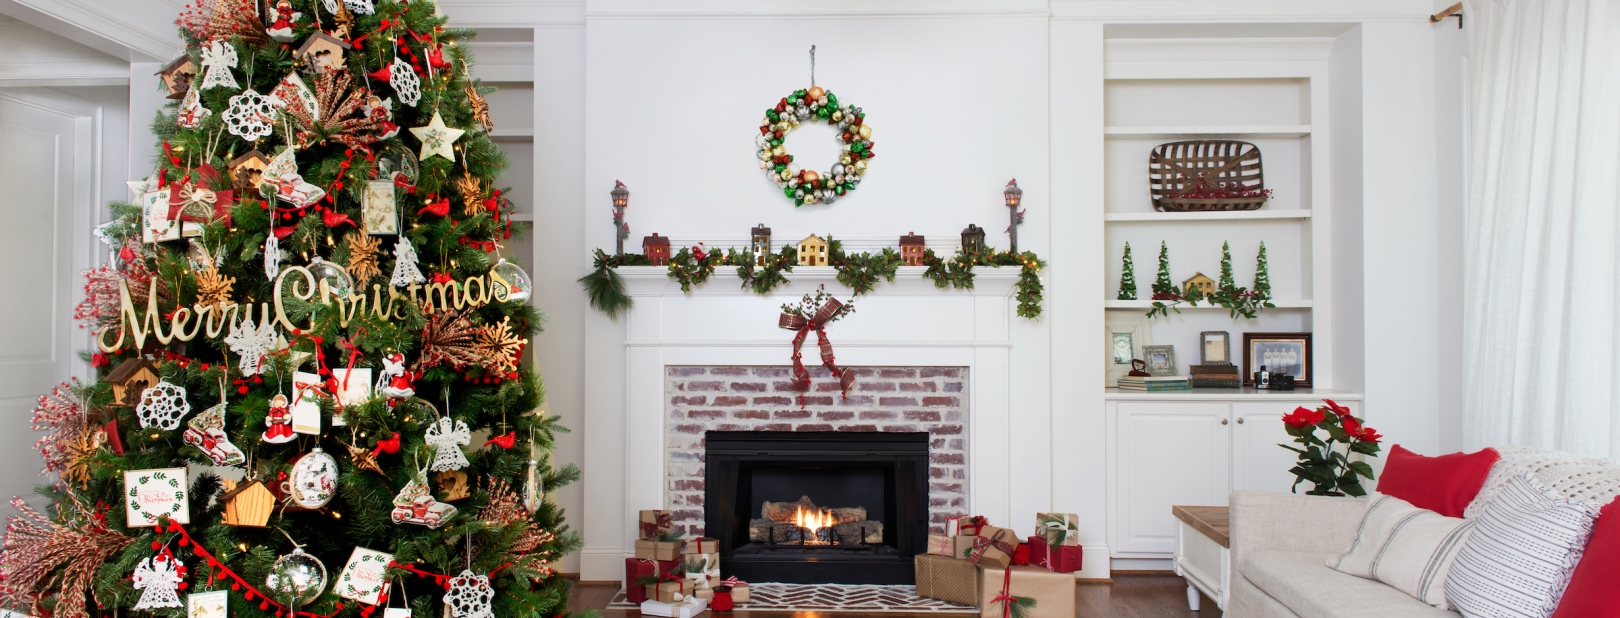 Traditional Christmas Decor – Cracker Barrel Lifestyle